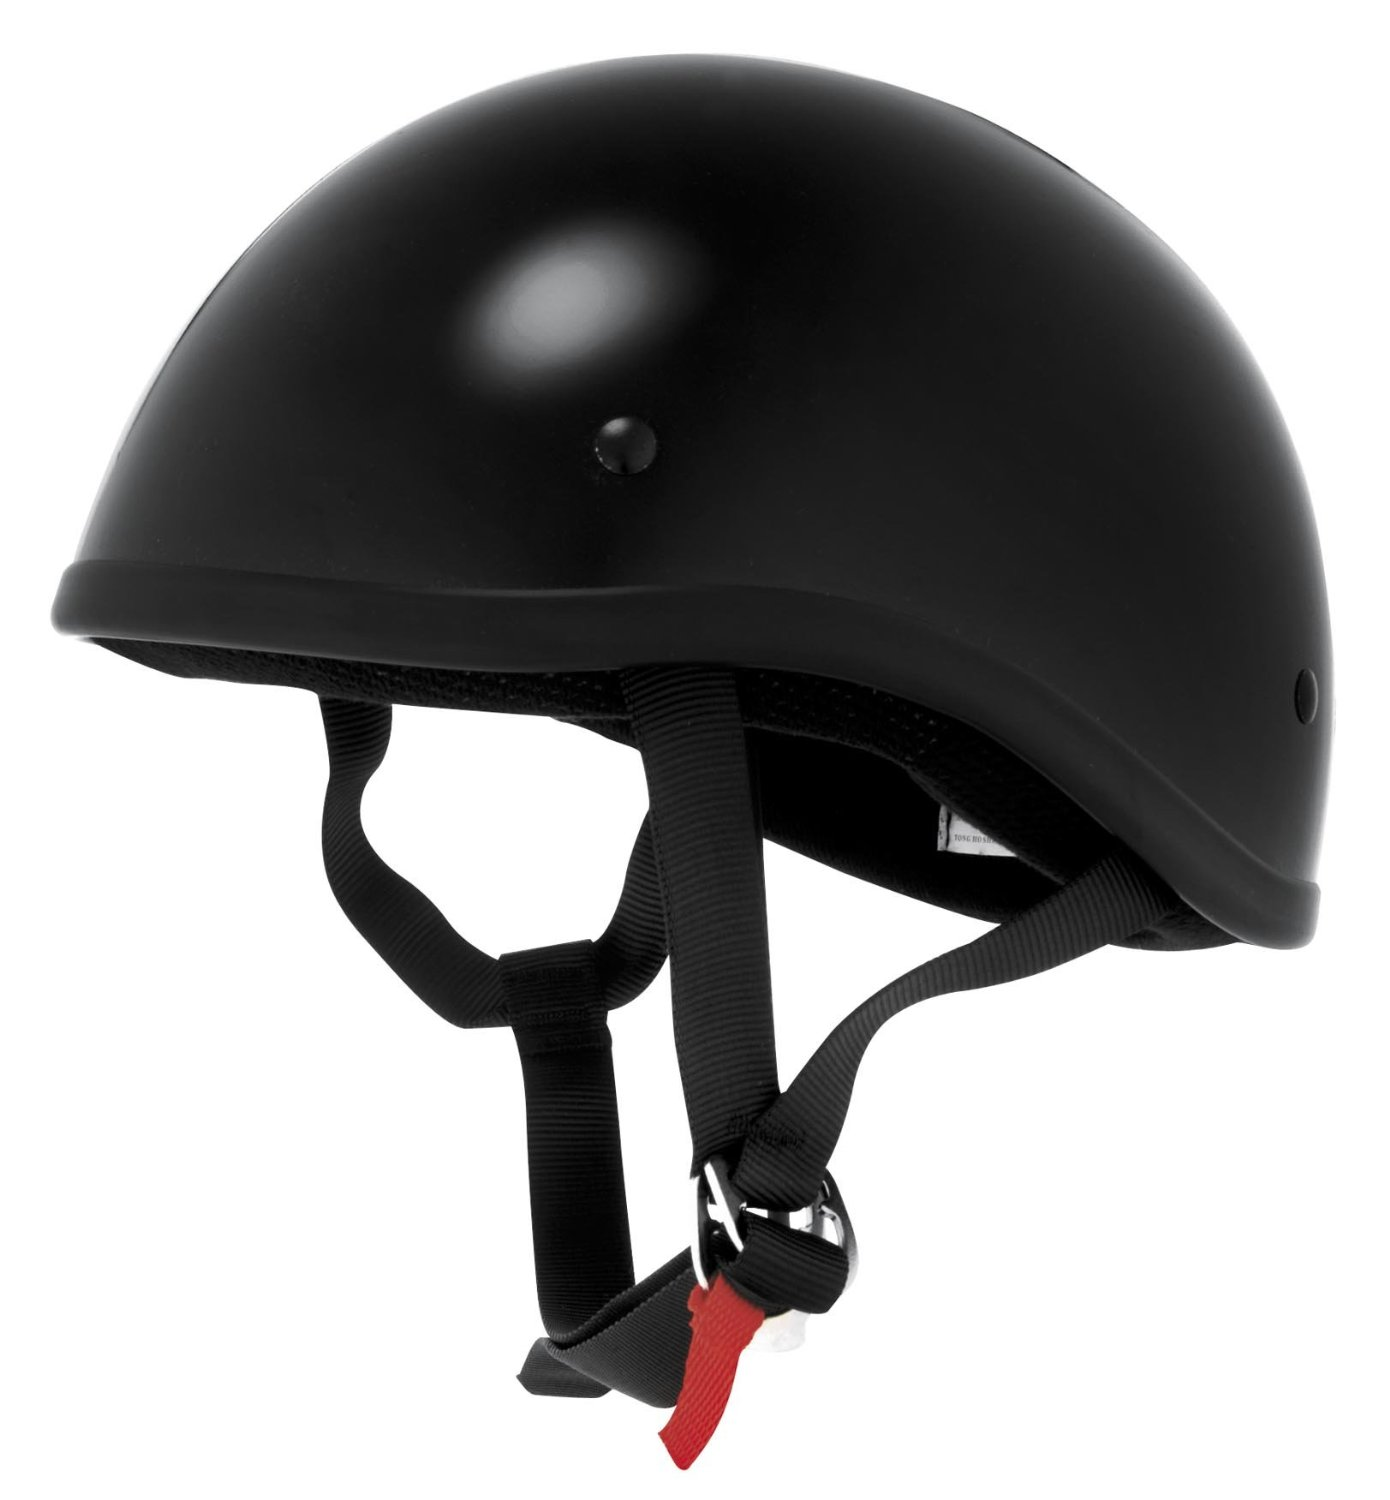 SkidLids Bicycle Helmets